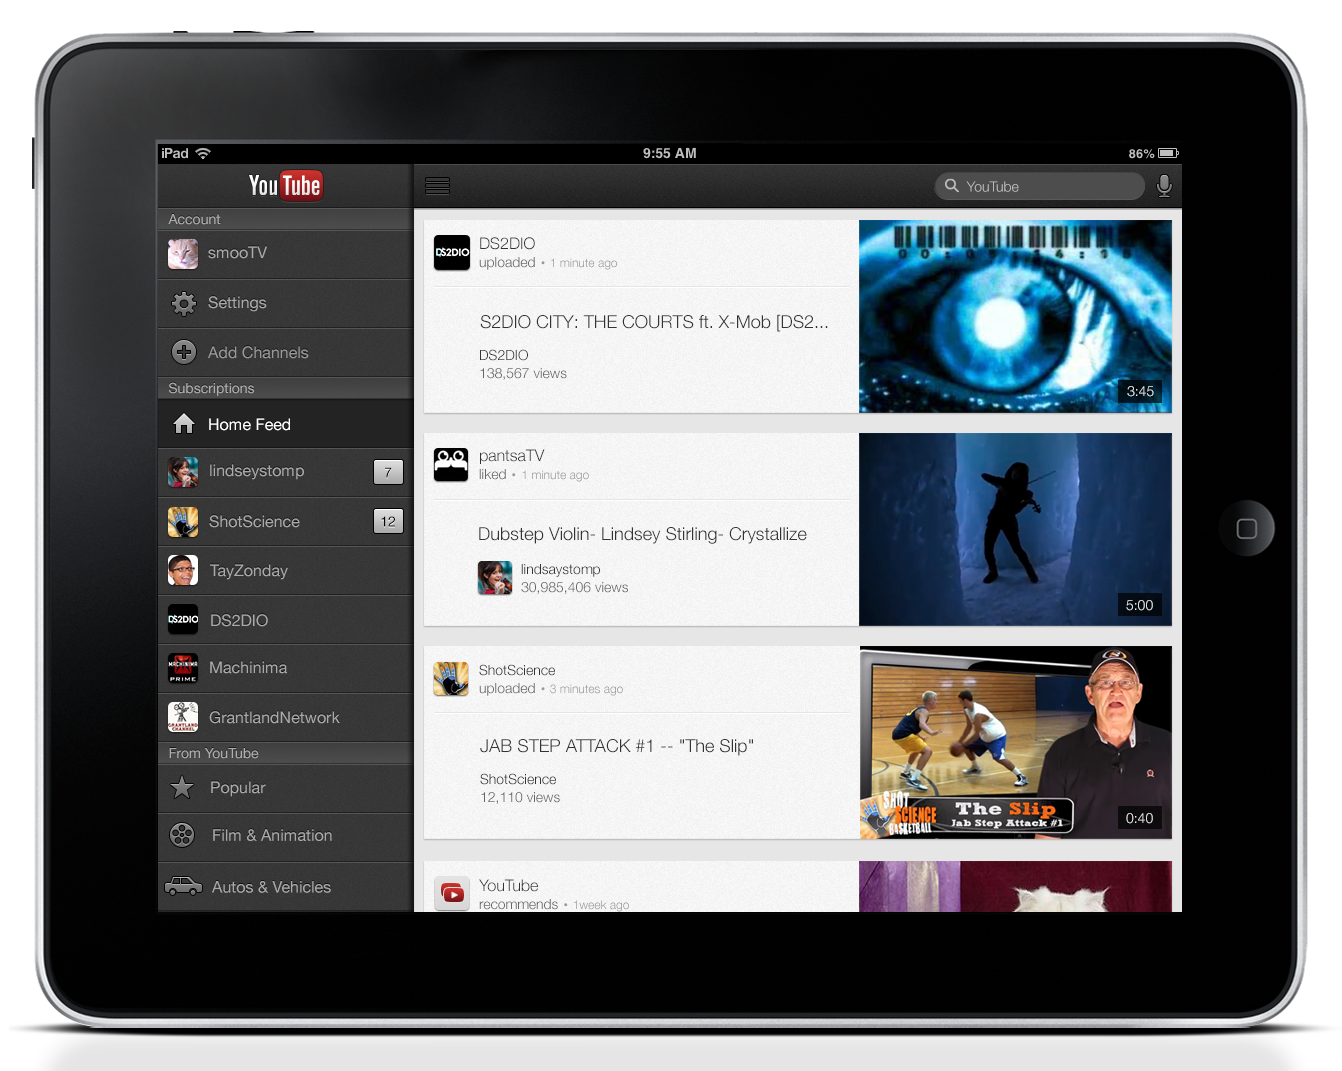 YouTube Updates iOS App With iPad Support, AirPlay, and Performance